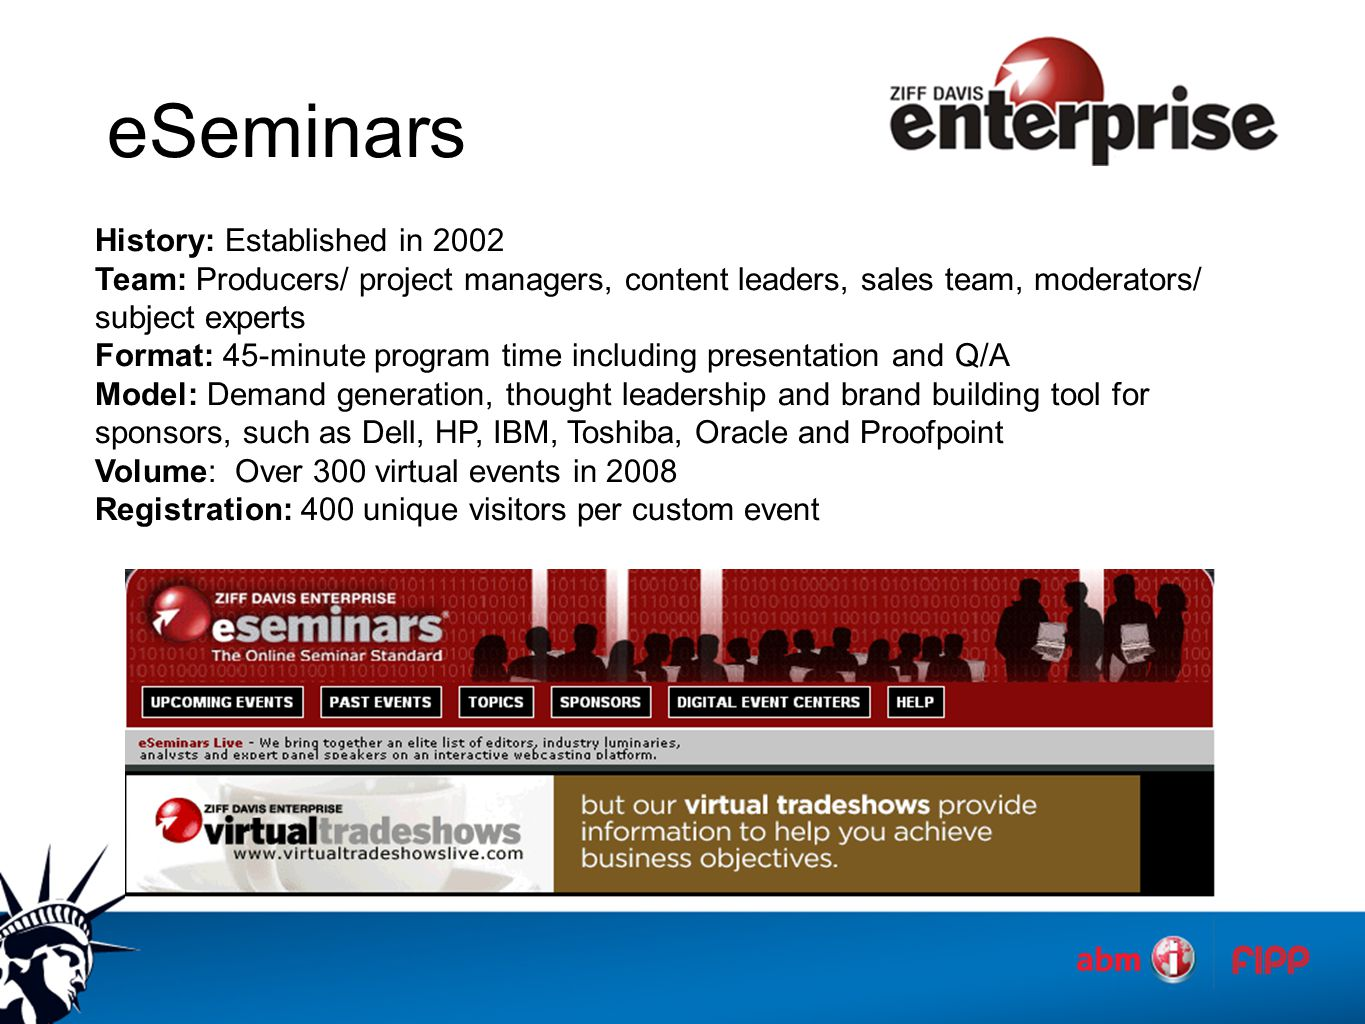 eSeminars History: Established in 2002 Team: Producers/ project managers, content leaders, sales team, moderators/ subject experts Format: 45-minute program time including presentation and Q/A Model: Demand generation, thought leadership and brand building tool for sponsors, such as Dell, HP, IBM, Toshiba, Oracle and Proofpoint Volume: Over 300 virtual events in 2008 Registration: 400 unique visitors per custom event